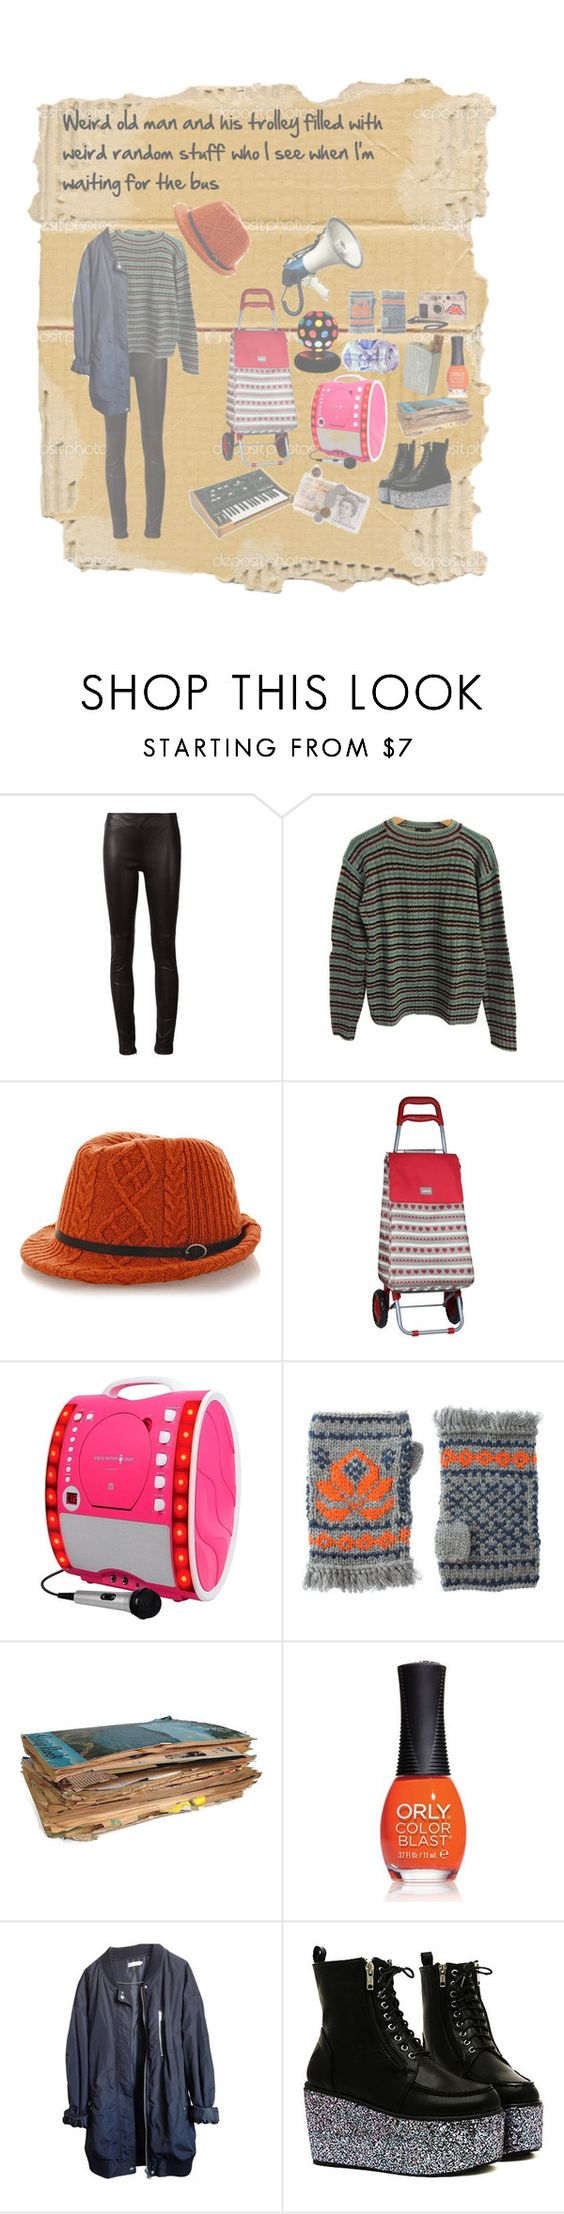 """Weird old man and his trolley filled with weird random stuff who I see when I'm waiting for the bus."" by vintageenglishrose ❤ liked on Polyvore featuring Lanvin, Prada, Inverni, Sabichi, Lowie, Moog, ORLY and Urban Outfitters"